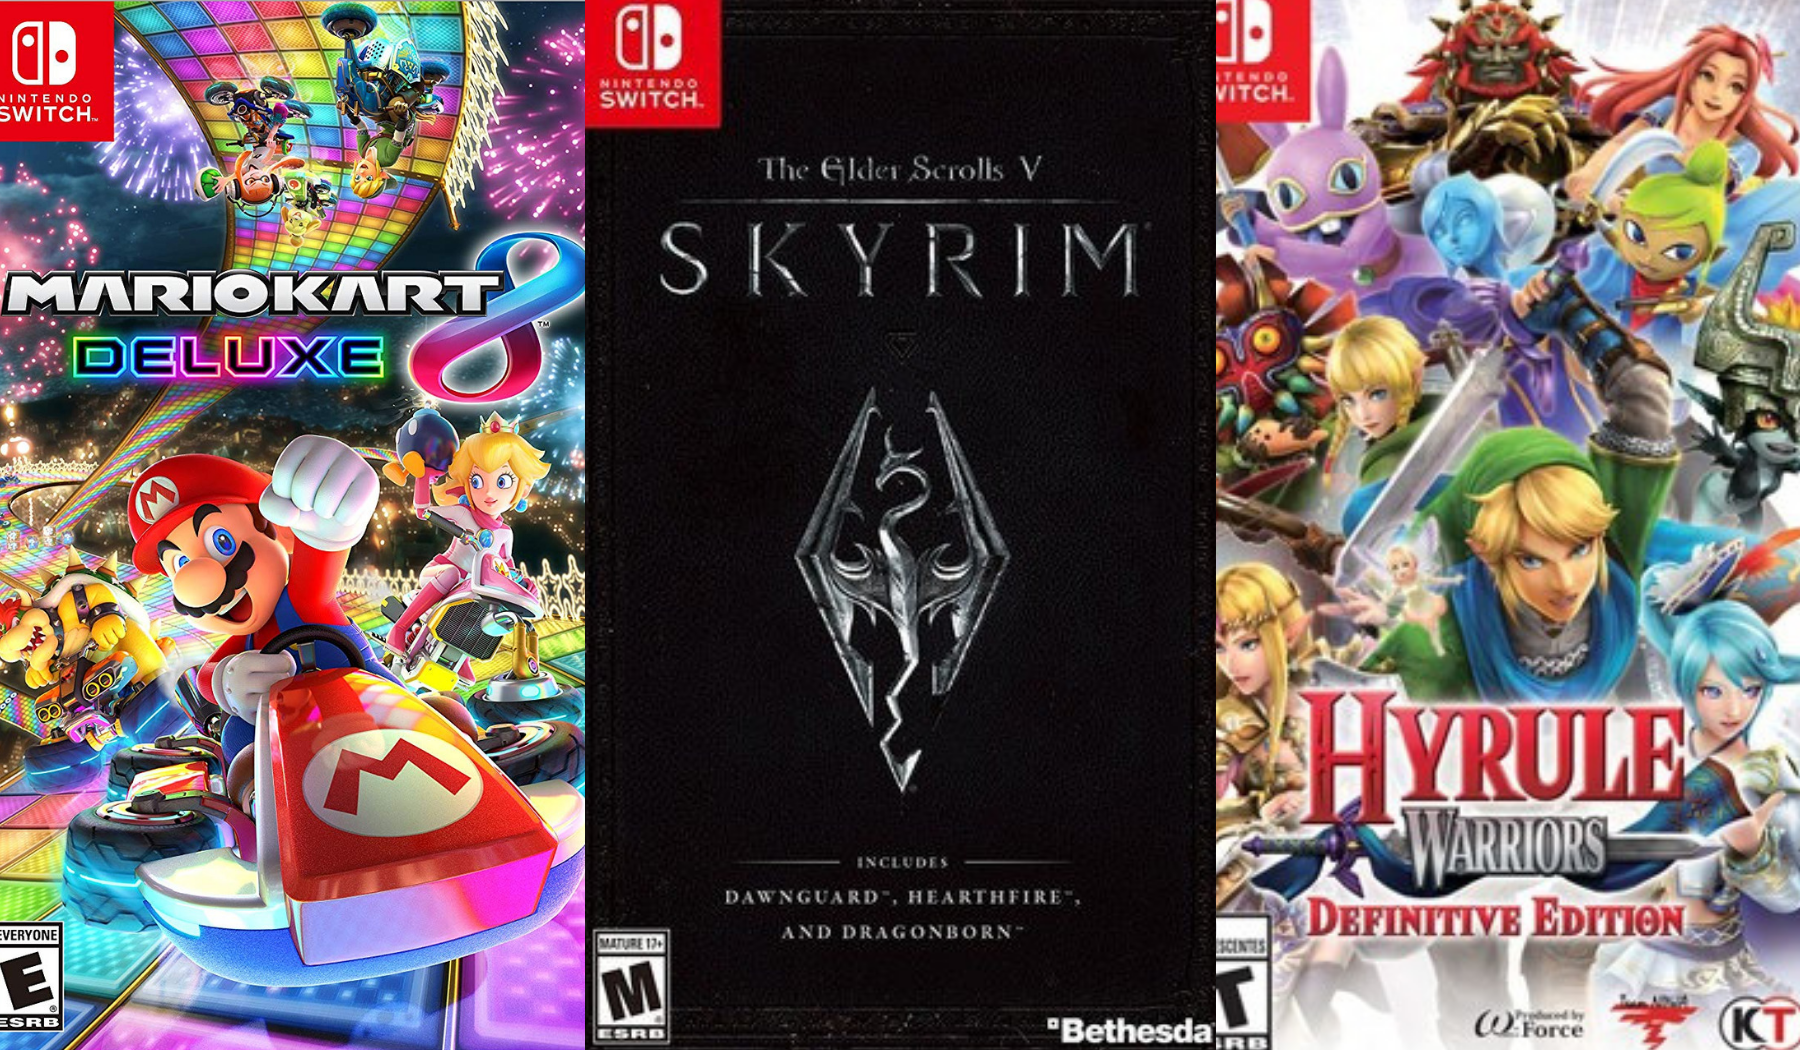 Nintendo Switch Games On Sale Save On Mario Kart Hyrule Warriors Skyrim Nba 2k19